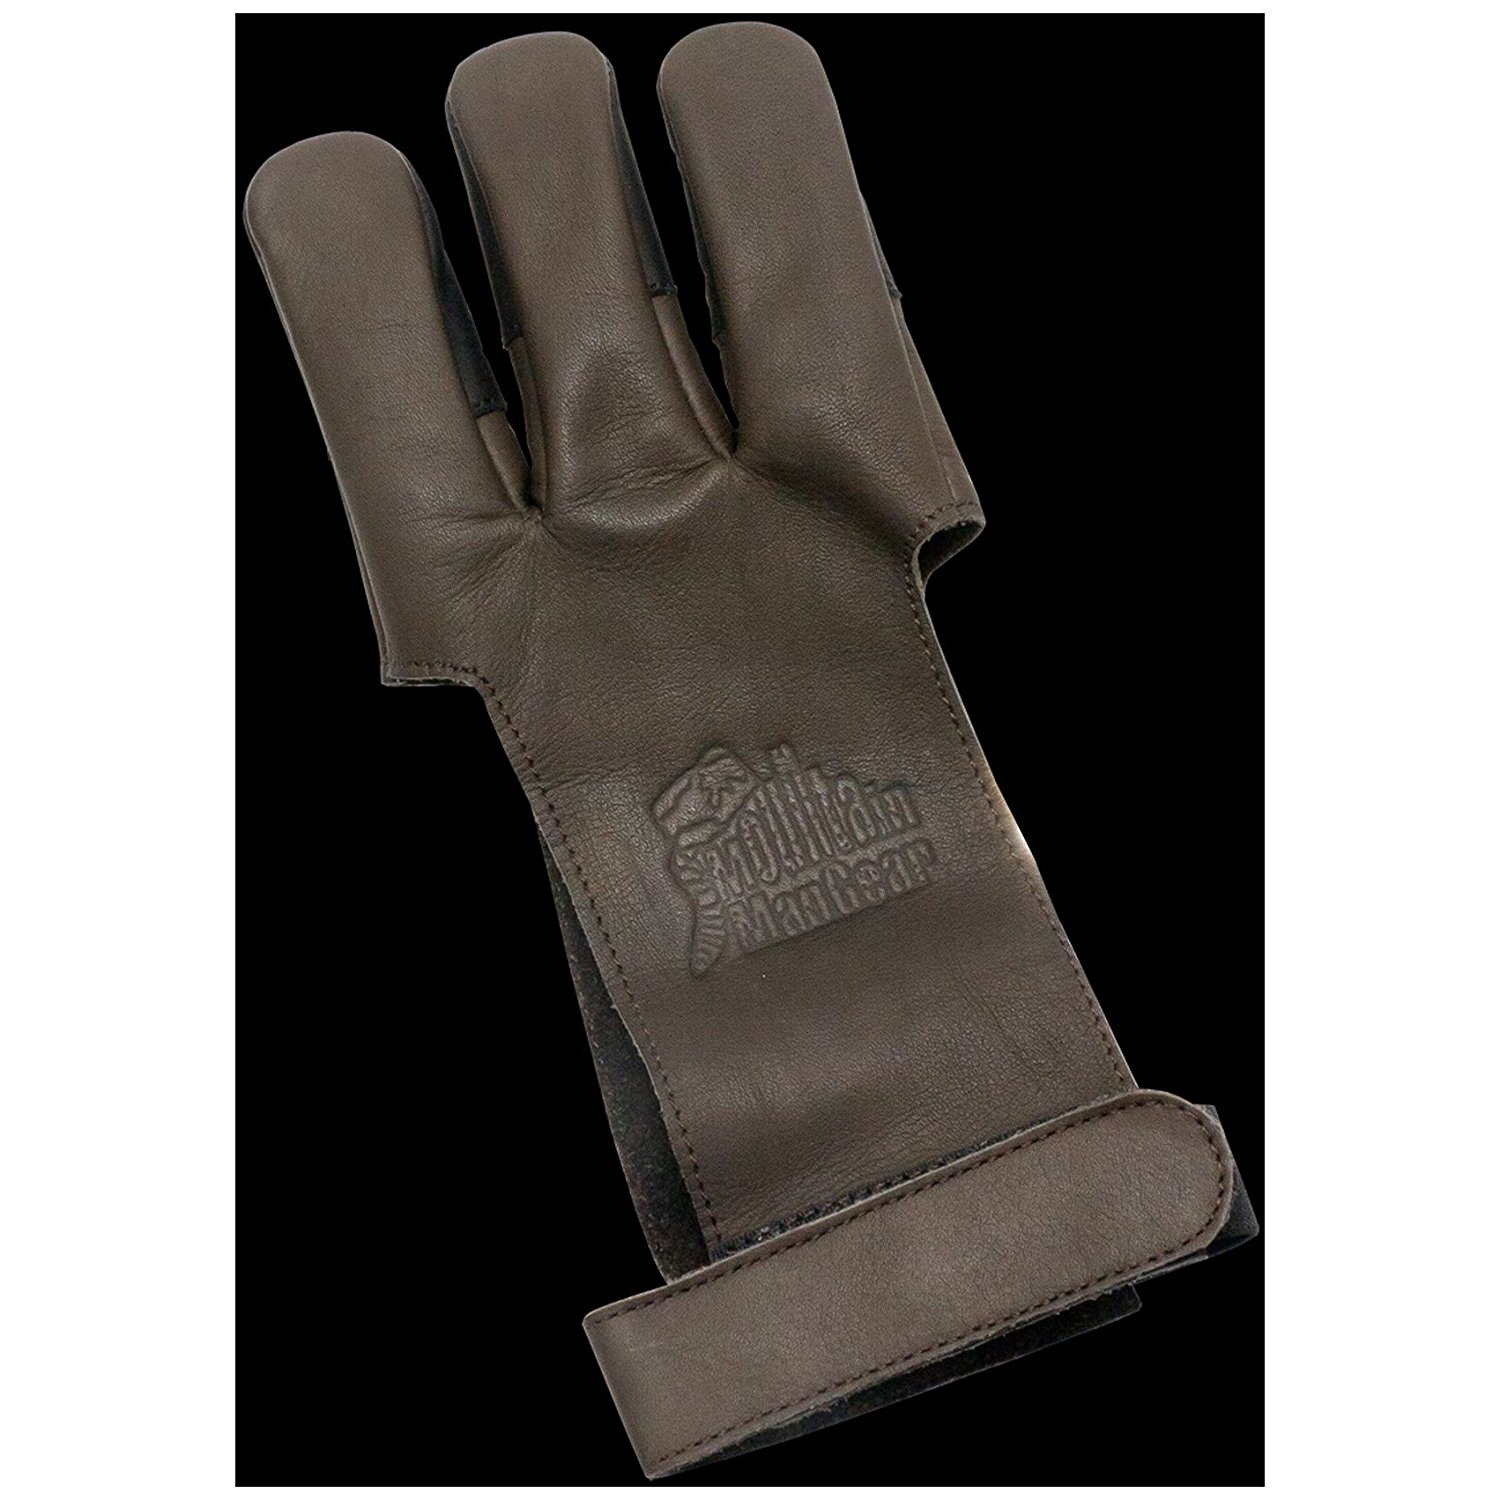 OMP MOUNTAIN MAN LEATHER SHOOTING GLOVE